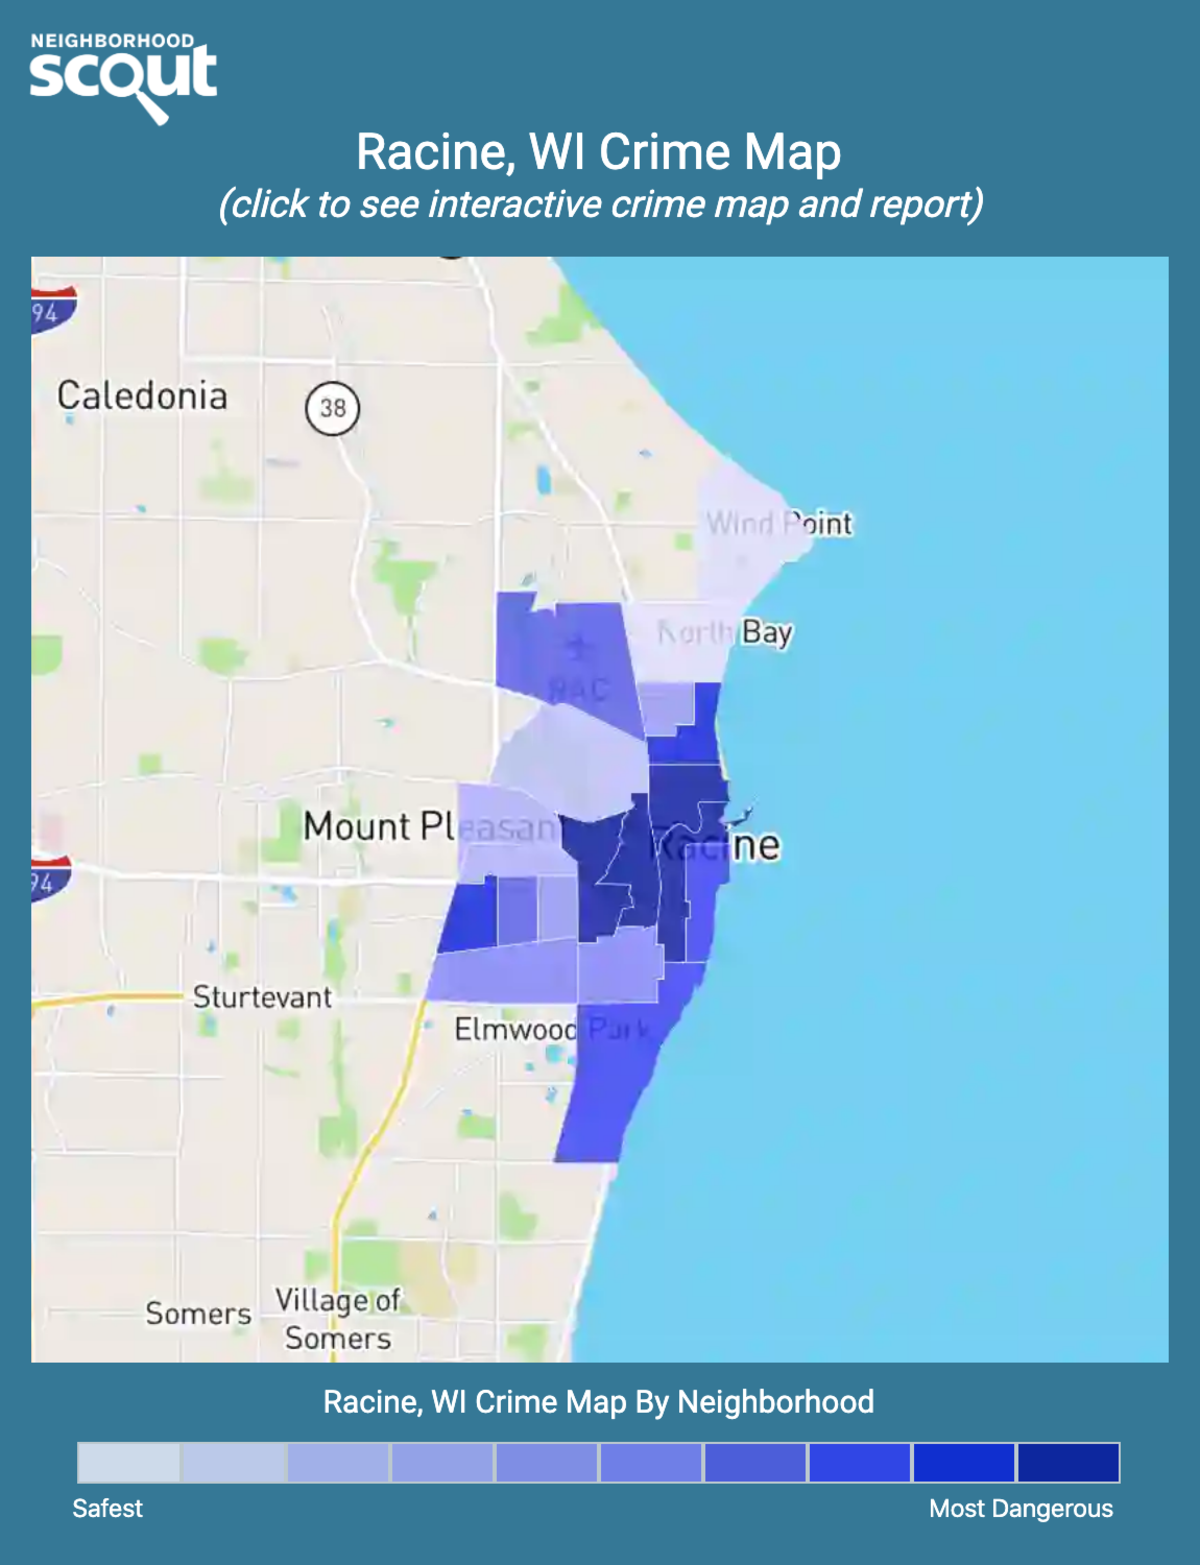 Racine, Wisconsin crime map